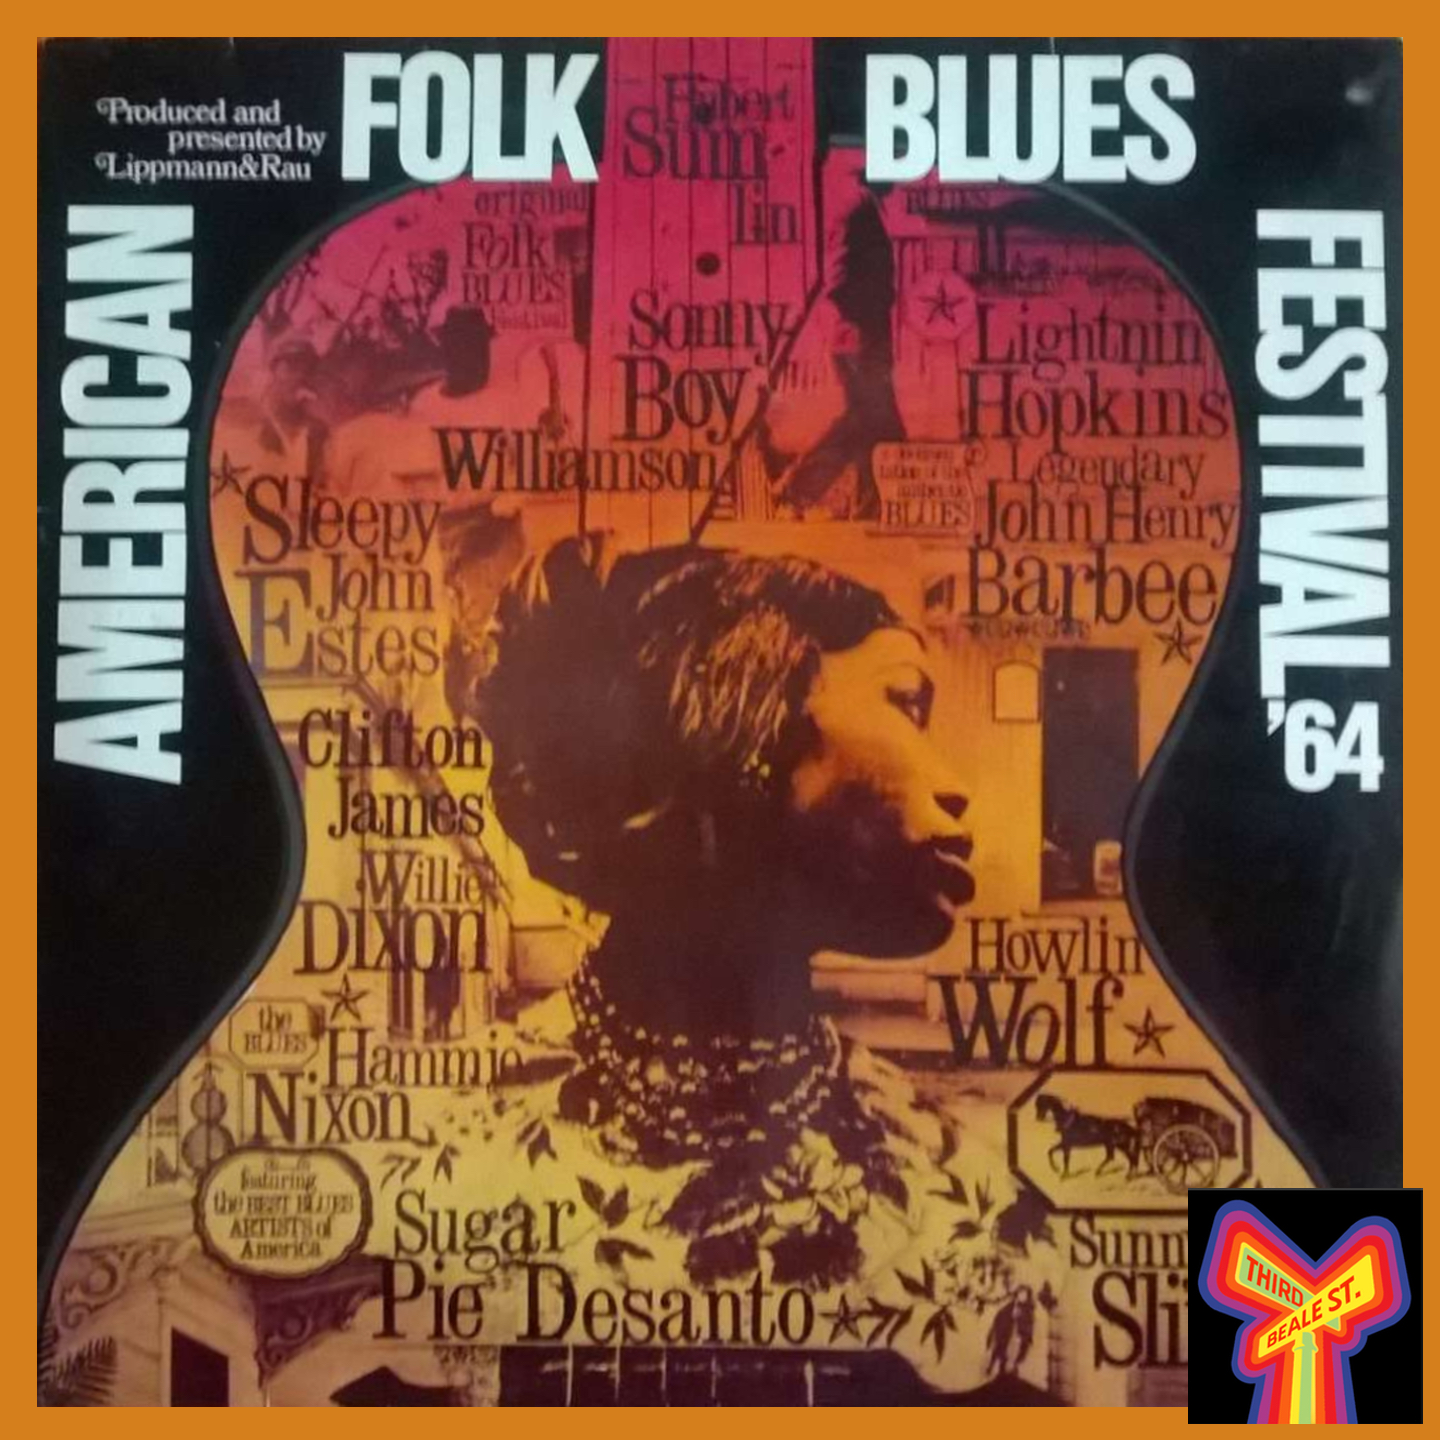 Caption: Some of the distinctive graphics from the American Folk Blues Festival tours, this one from 1964.